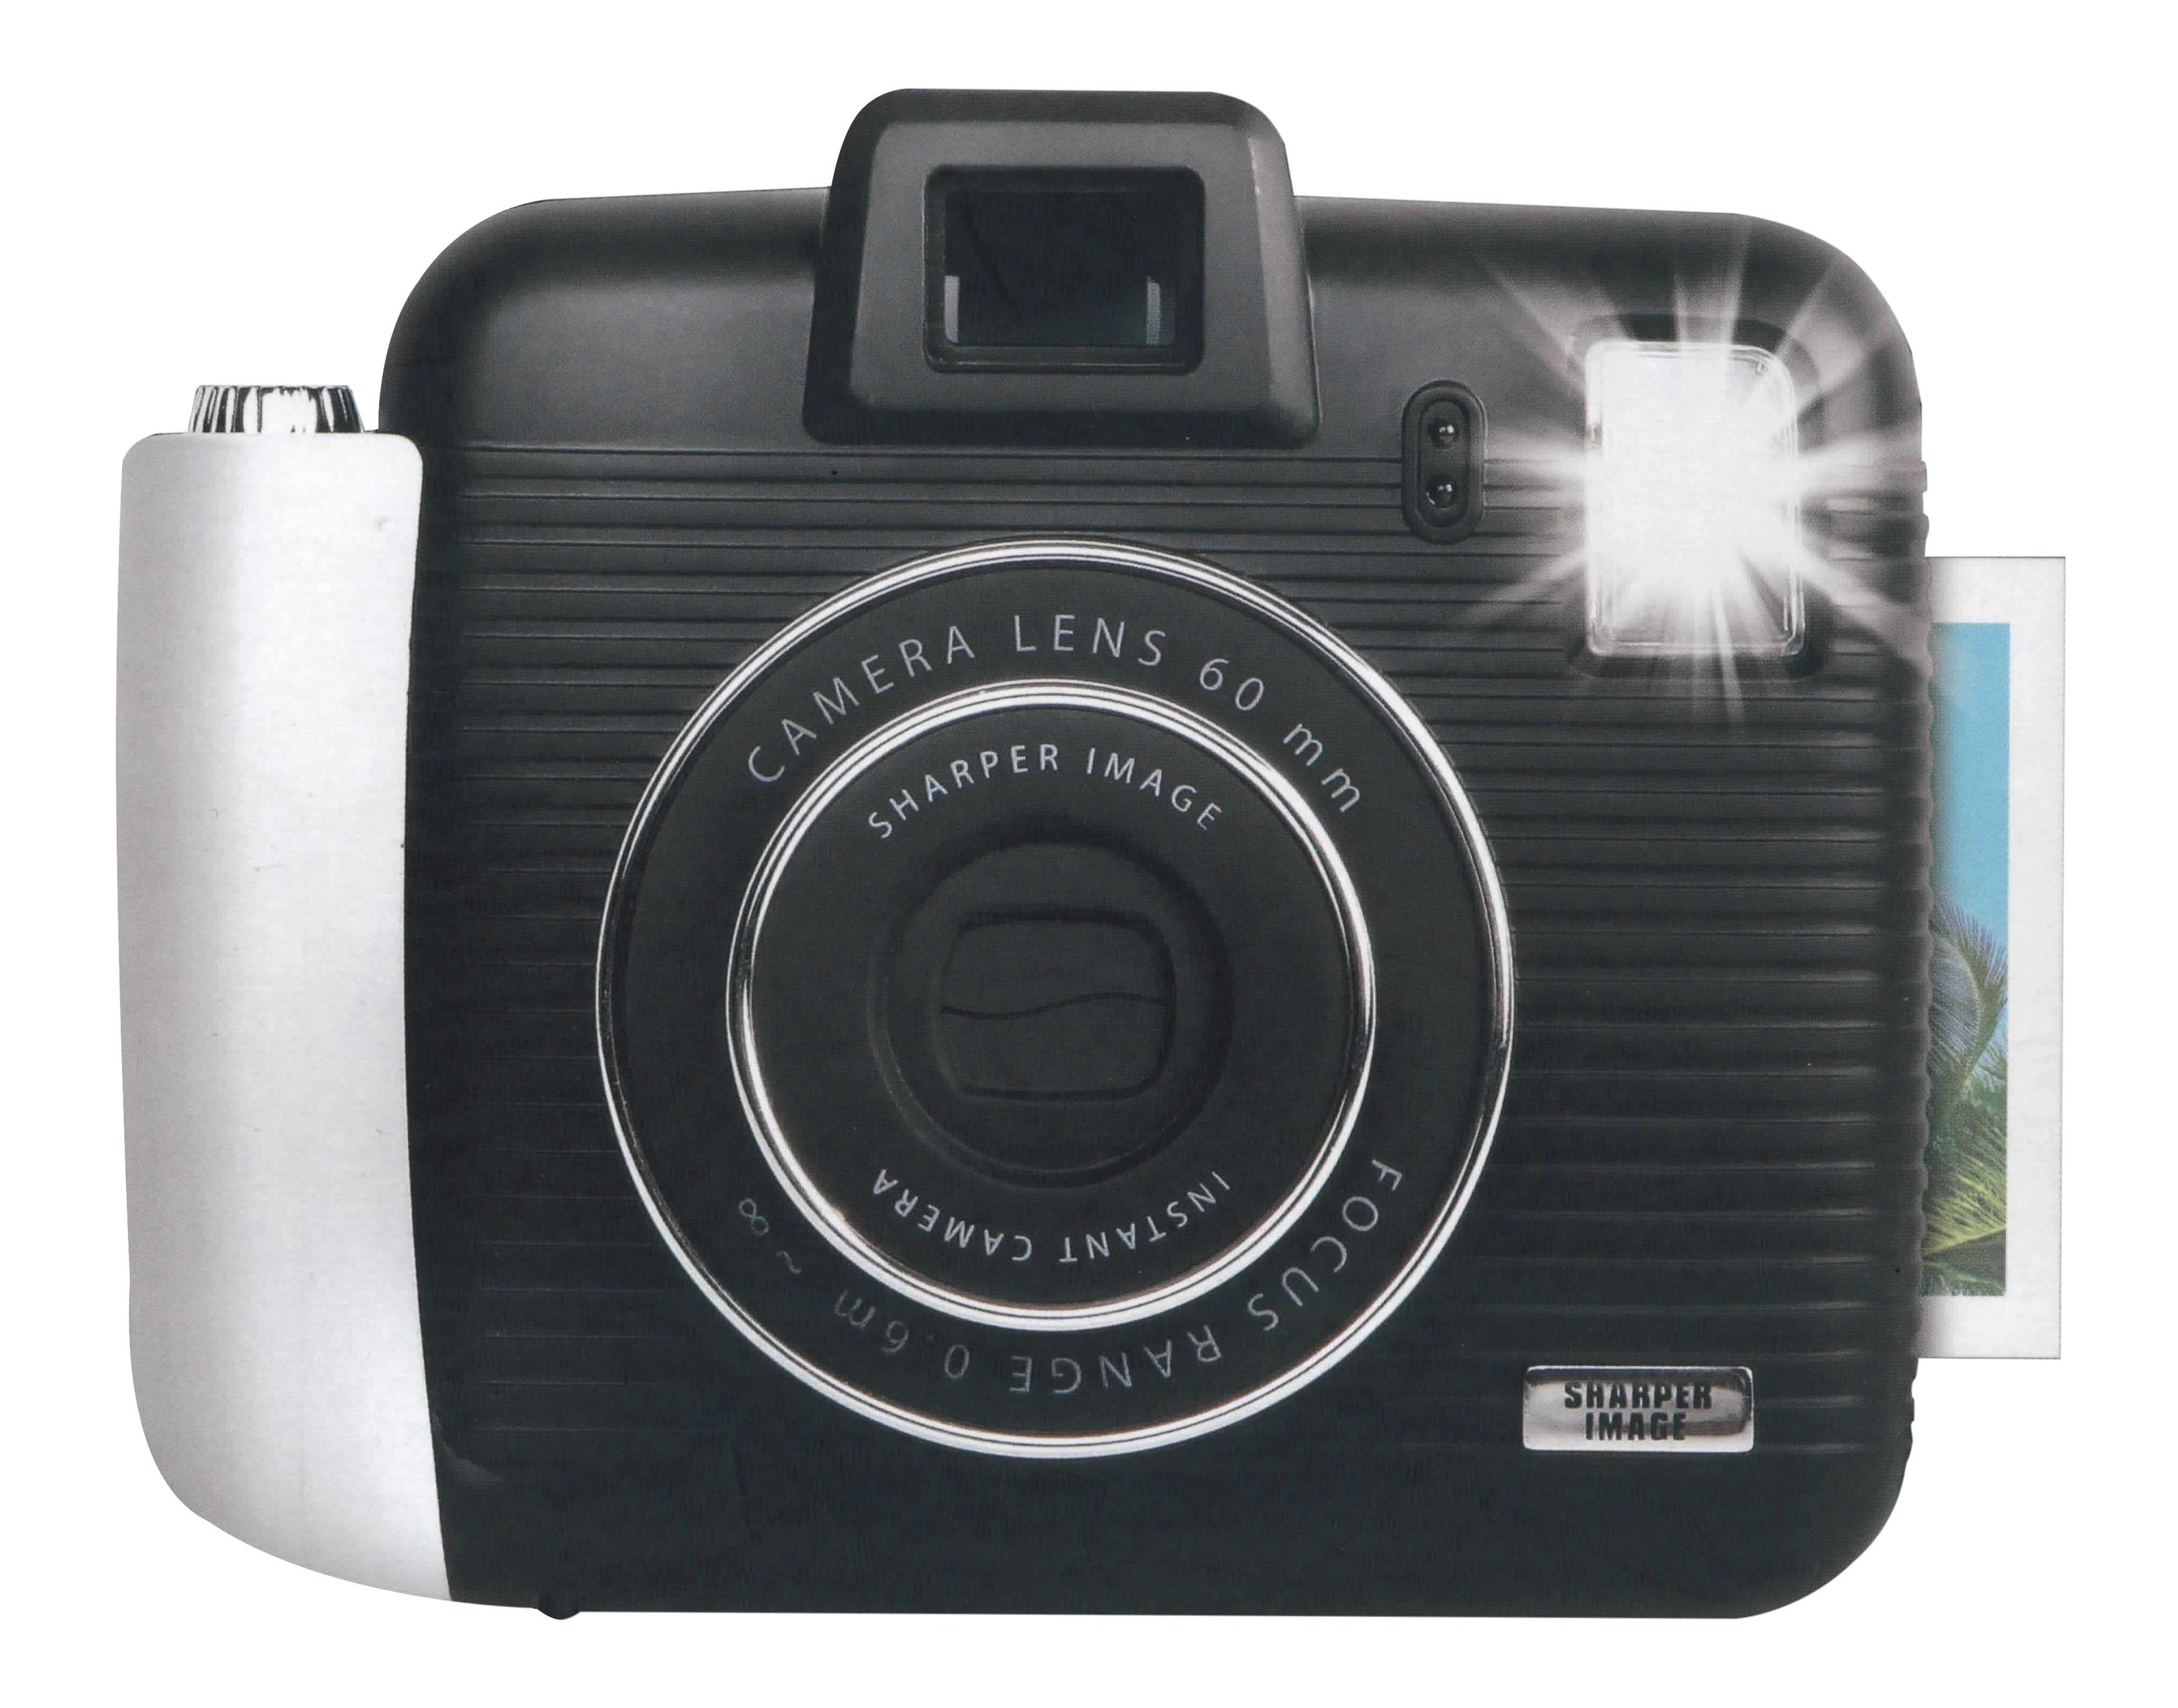 black shaper image instant camera with the flash on and a picture coming out